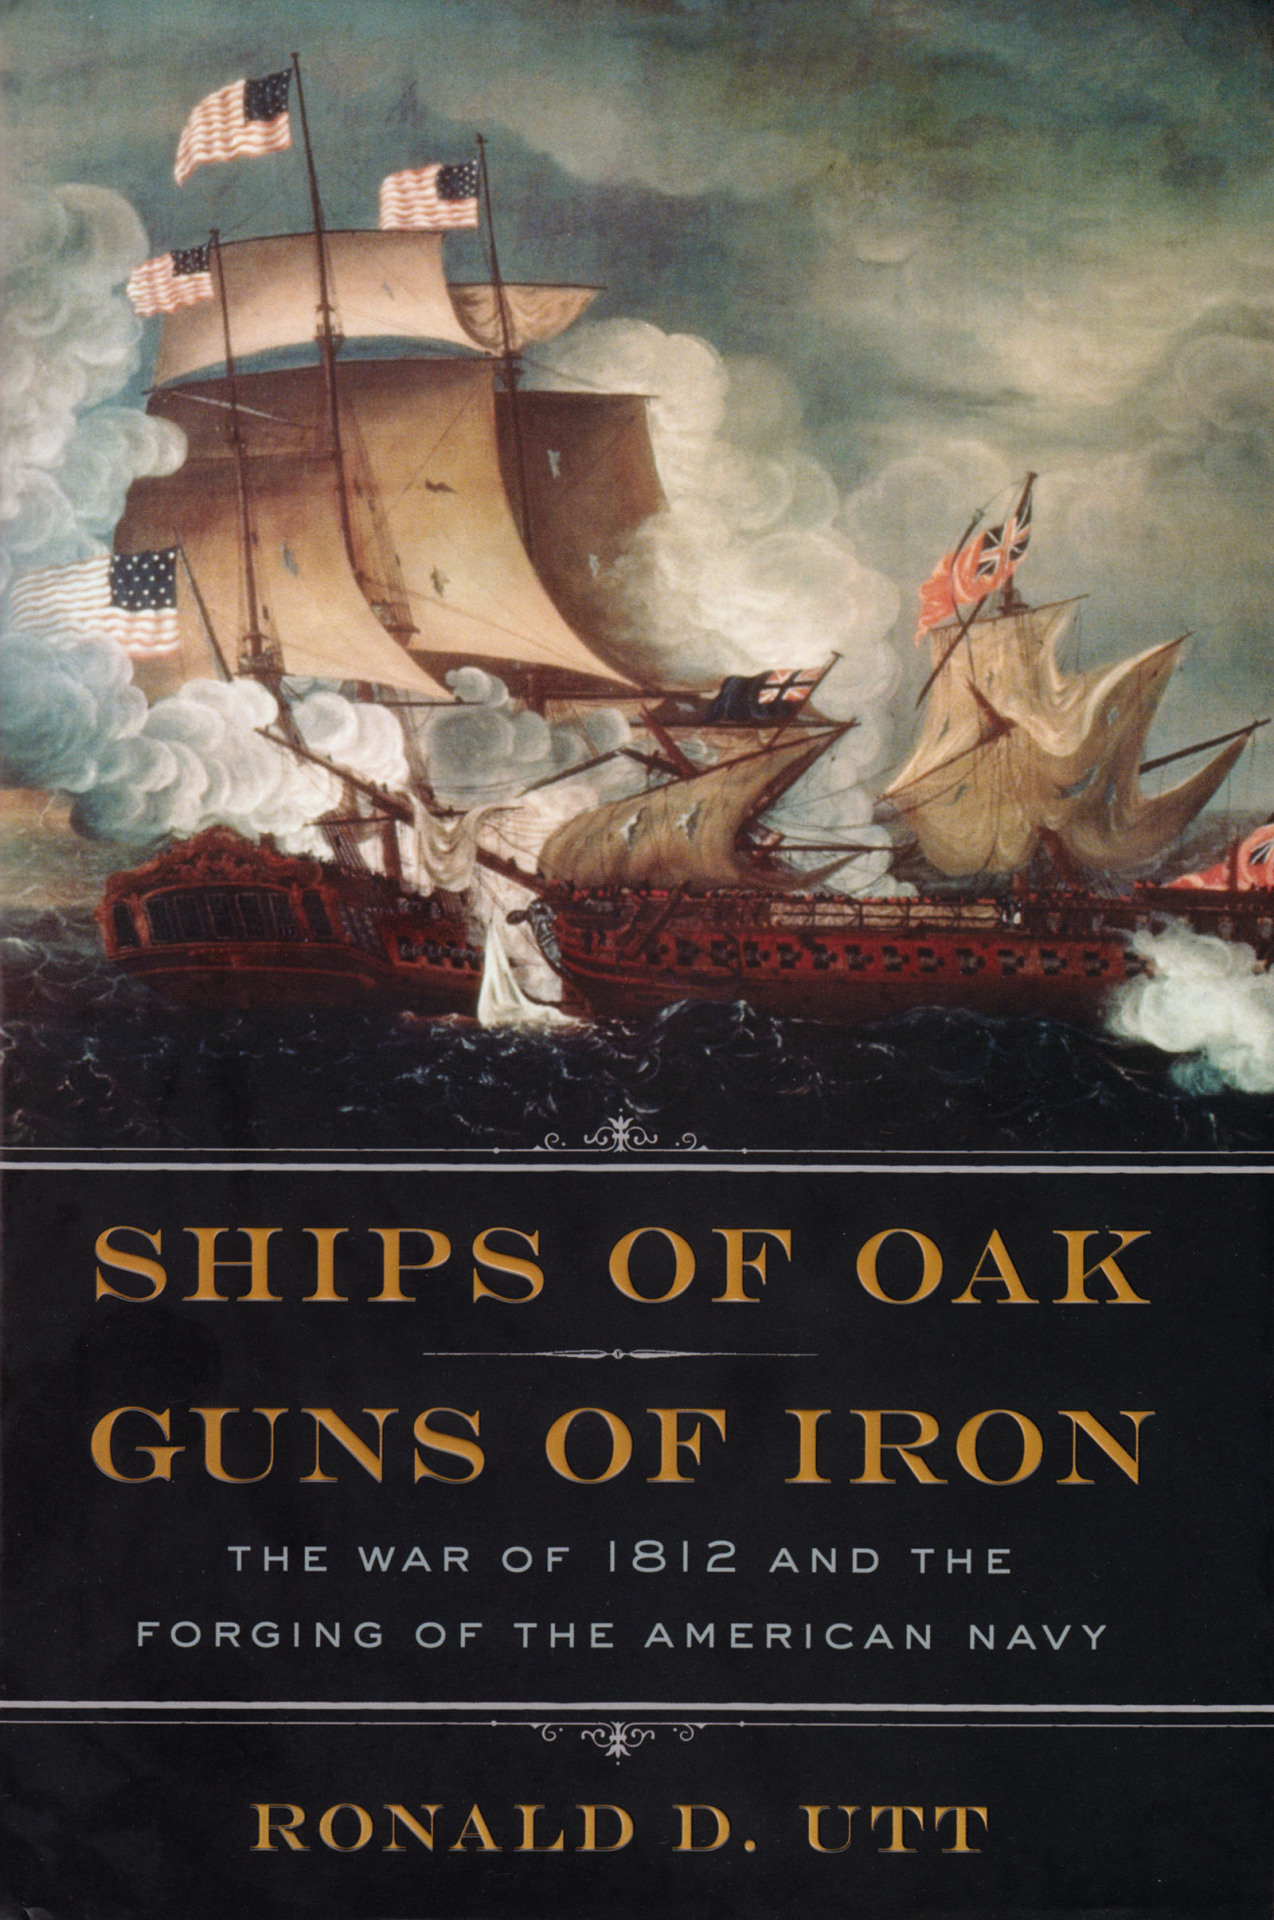 "BOOK REVIEW – Ships of Oak, Guns of Iron: The War of 1812 and the Forging of the American Navy  By Ronald D. Utt,  Regnery Publishing, Washington, DC, (2012). Reviewed by David Curtis Skaggs, Ph.D. Entering the lists of War of 1812 naval history contenders is Ronald Utt's Ships of Oak, Guns of Iron that seeks to demonstrate that this conflict forged the respected United States Navy that emerged in the nineteenth century. Or at least that is what his subtitle suggests is the objective of this popularized account of naval portion of what the British term ""the second American war."" Utt enters in the long line of jousters that includes James Fenimore Cooper, Theodore Roosevelt, and C. S. Forester. His most recent competitor is George Daughan's 1812: The Navy's War (2011). (read the full review)"